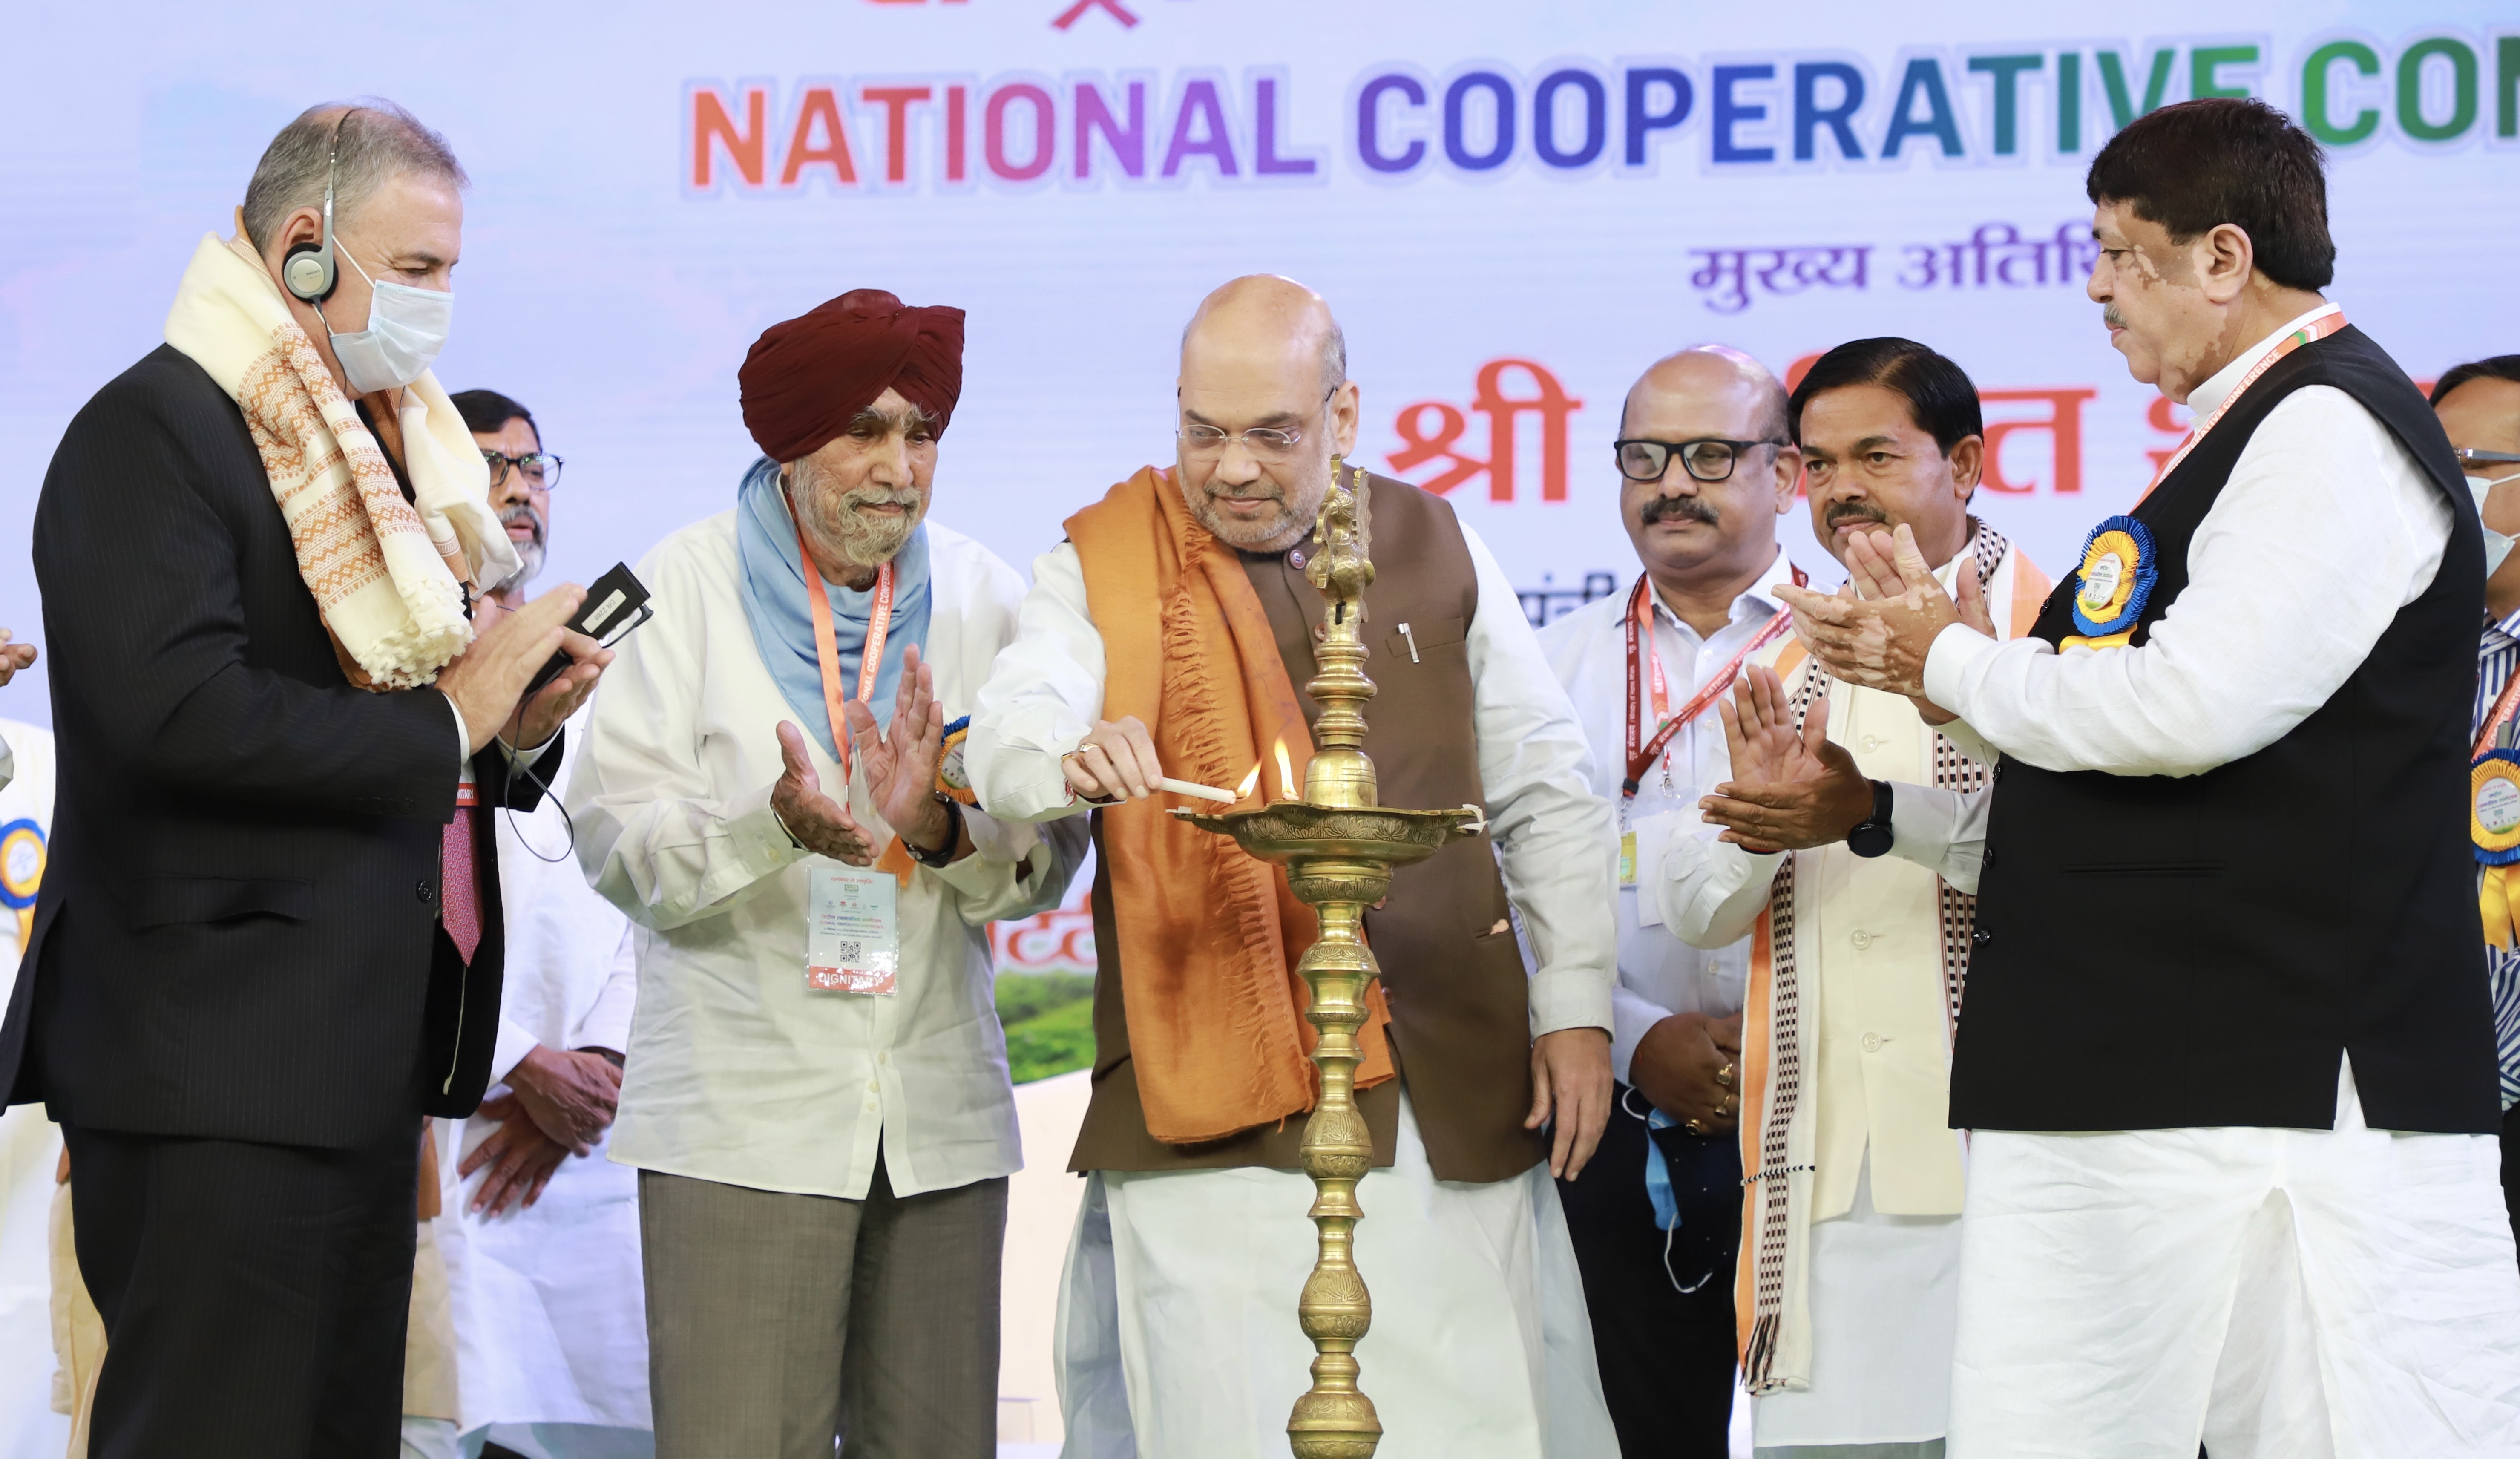 Shri Amit Shah attended the National Cooperative Conference